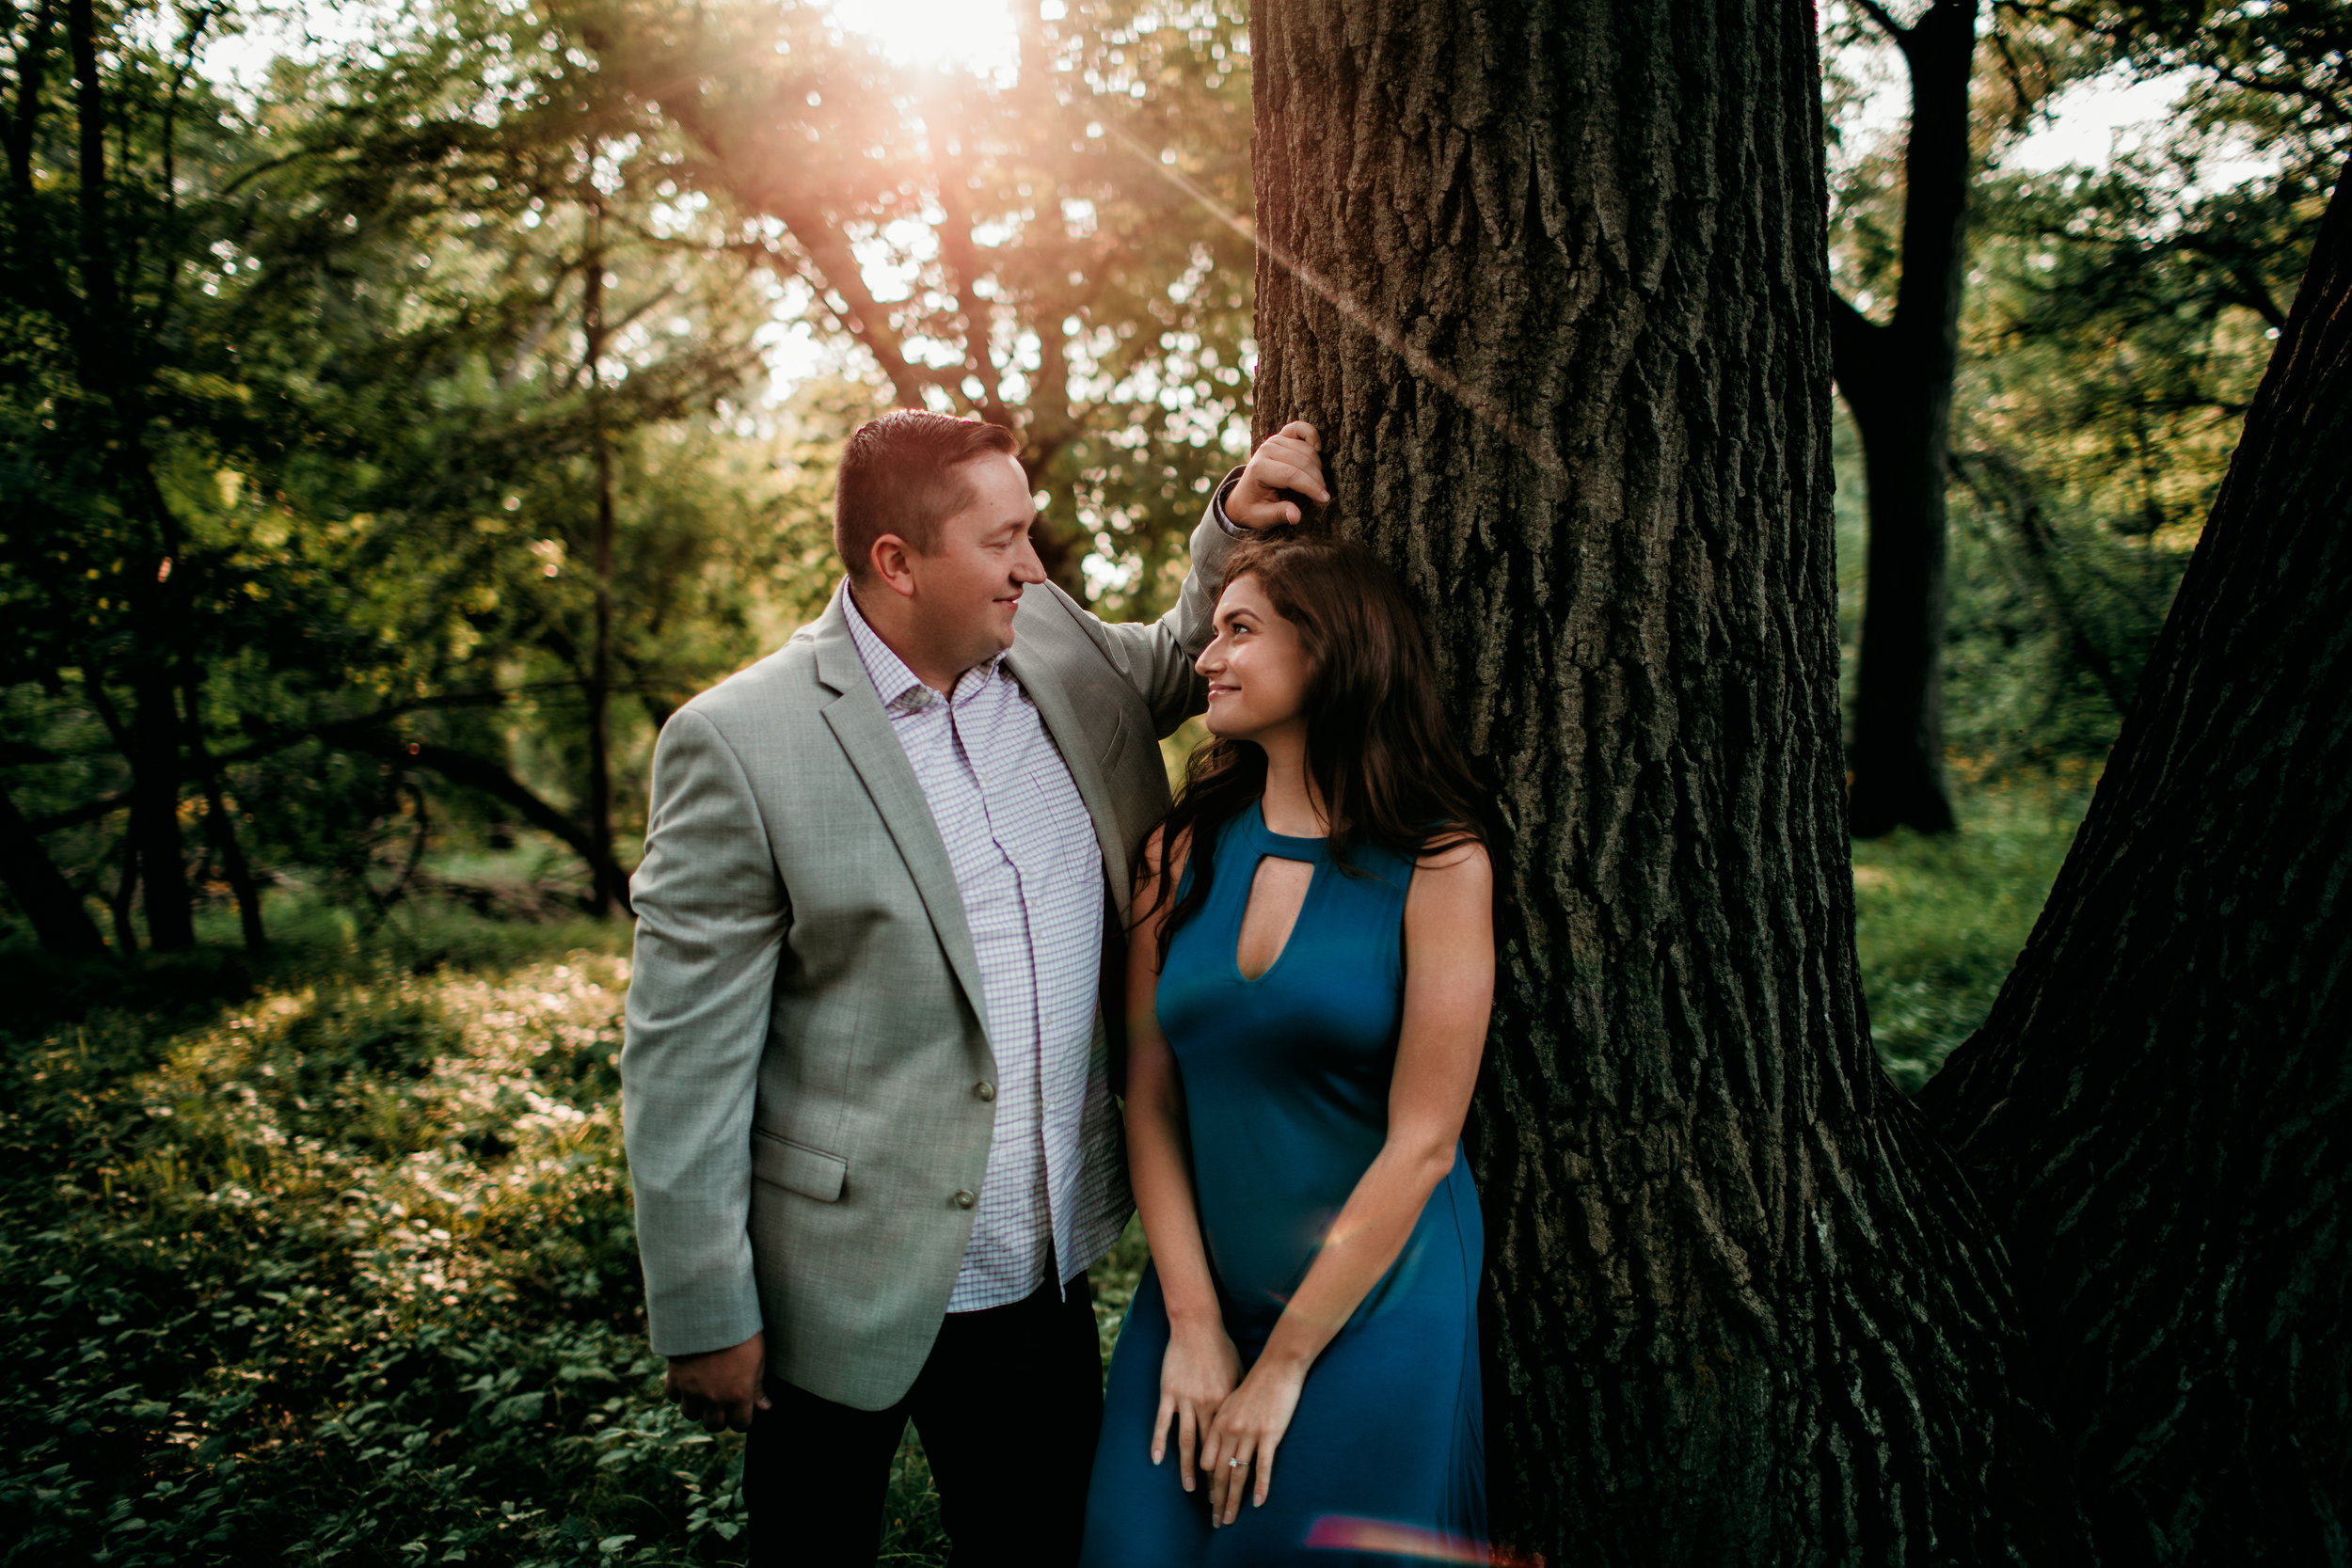 engagement-photography-austin-mn-minnesota-couples-photo-session